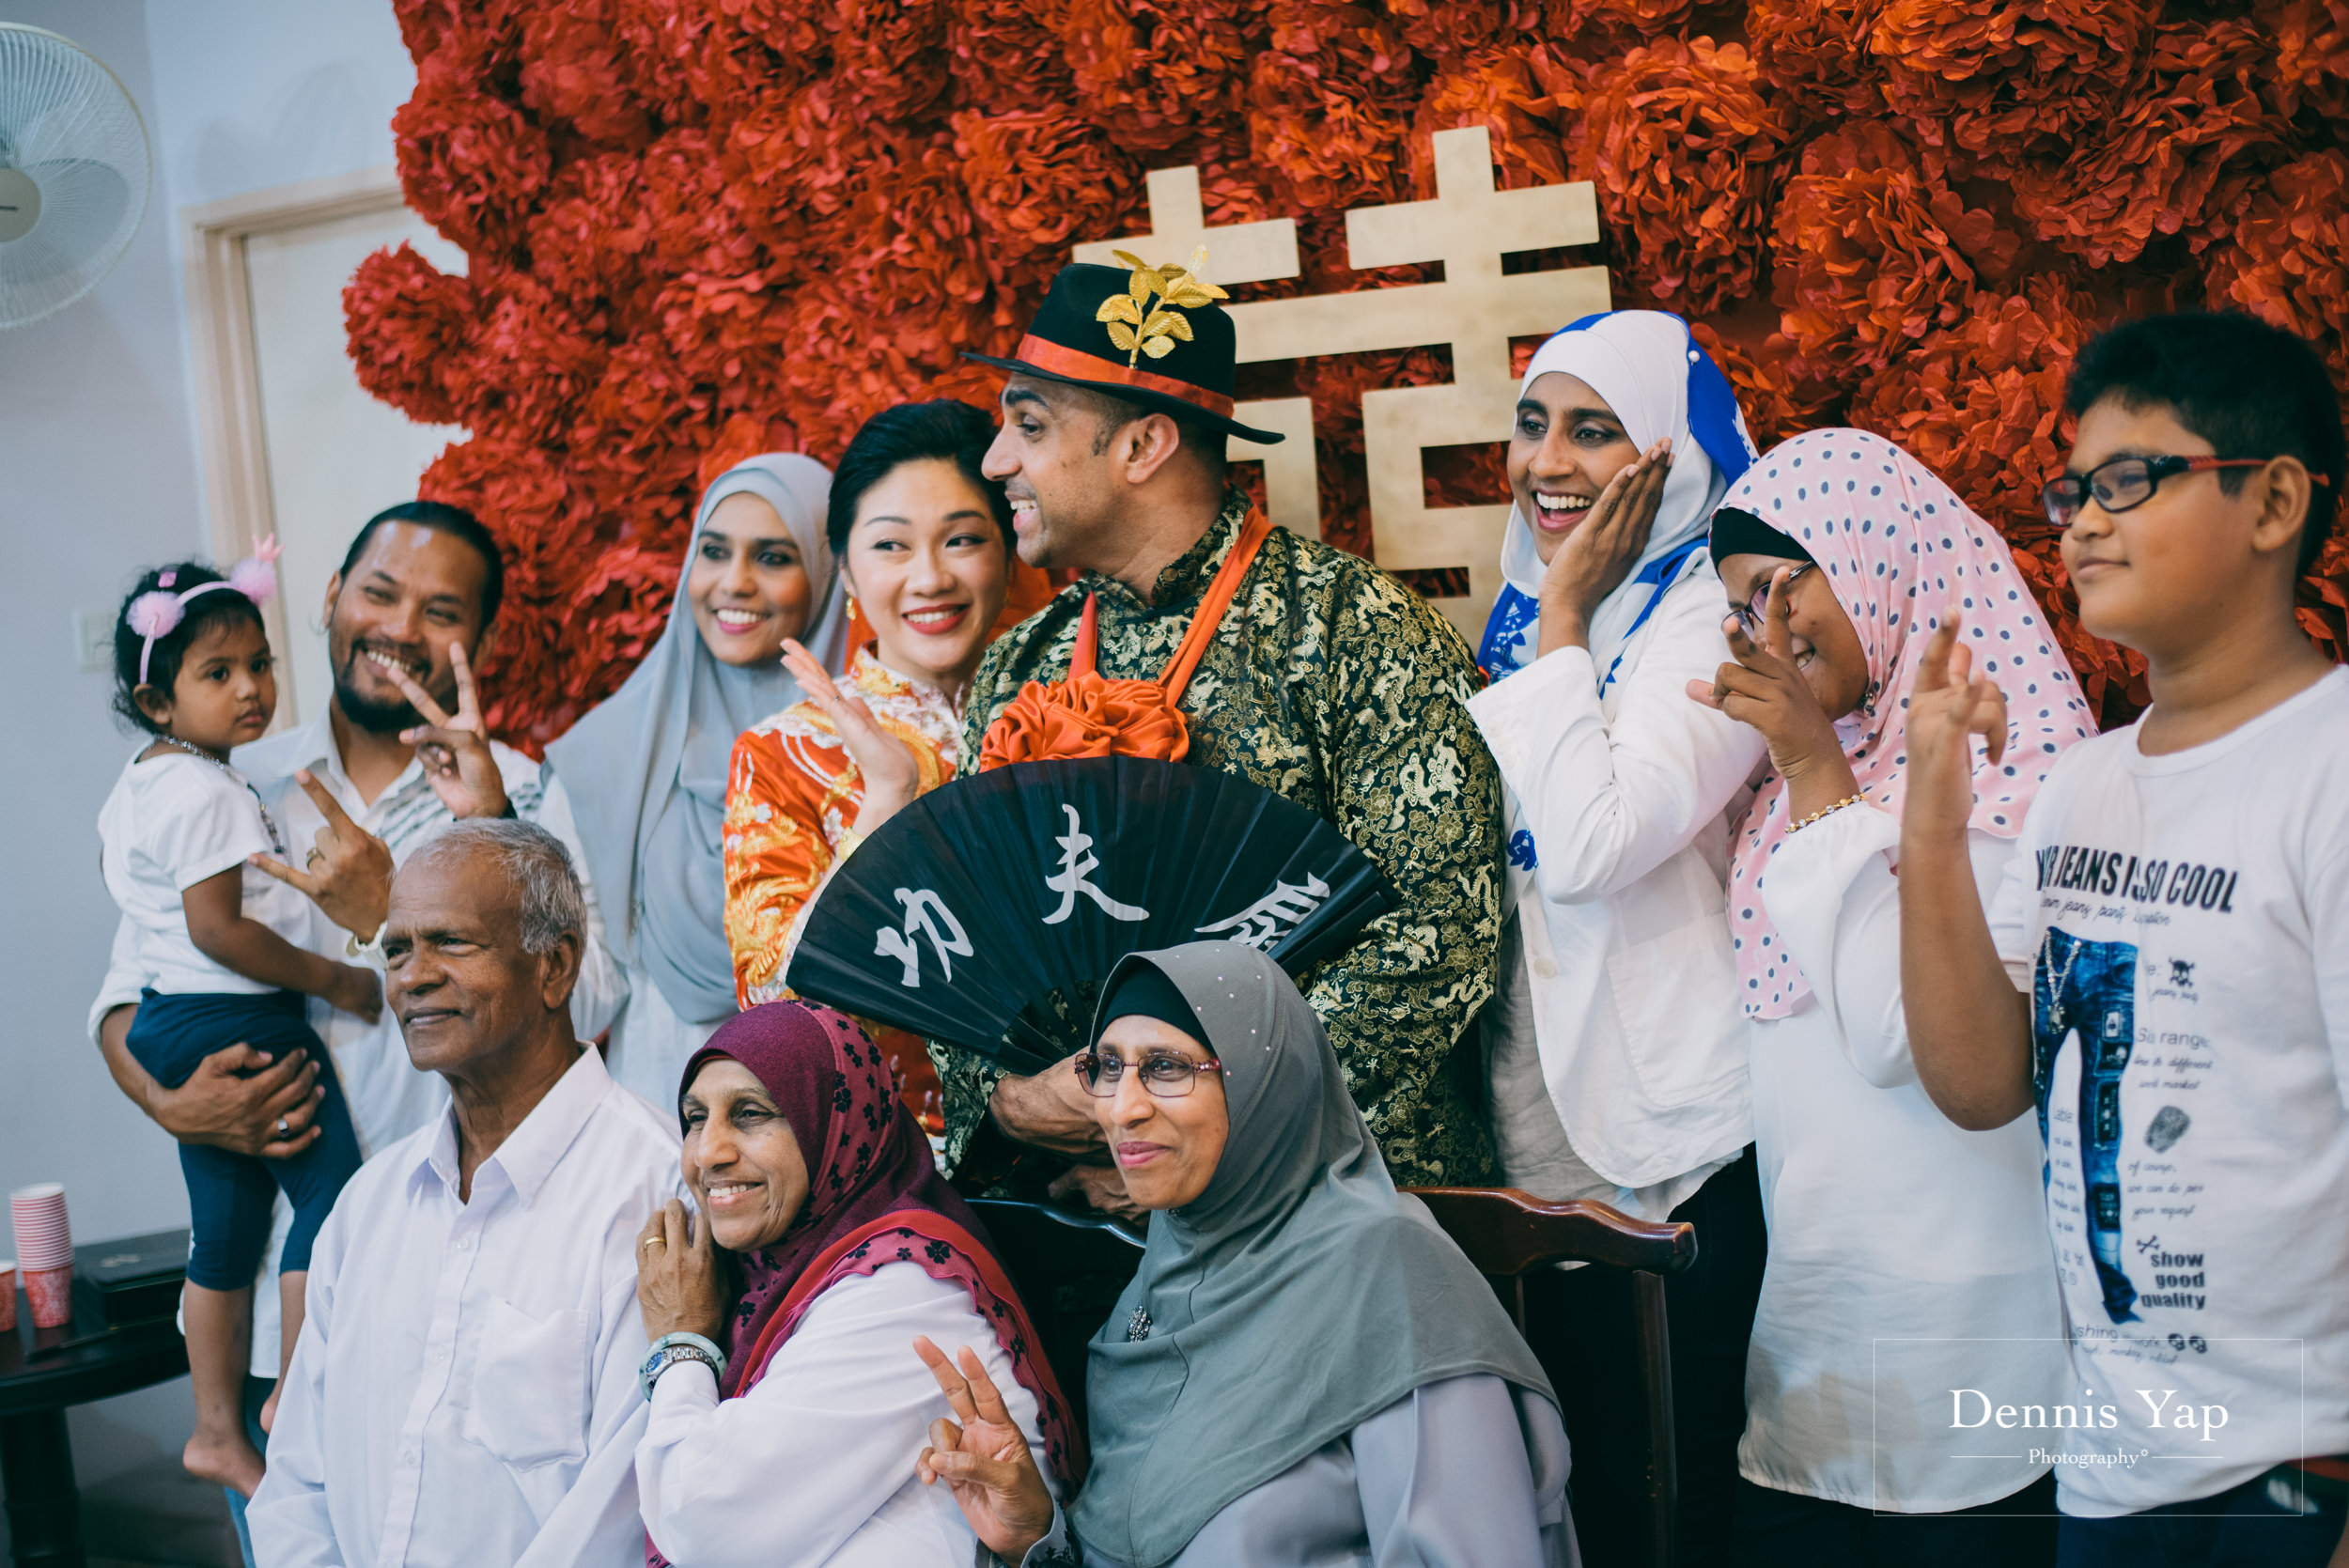 azmi zahraa wedding day gate crash traditional chinese and malay wedding dennis yap malaysia photographer-25.jpg